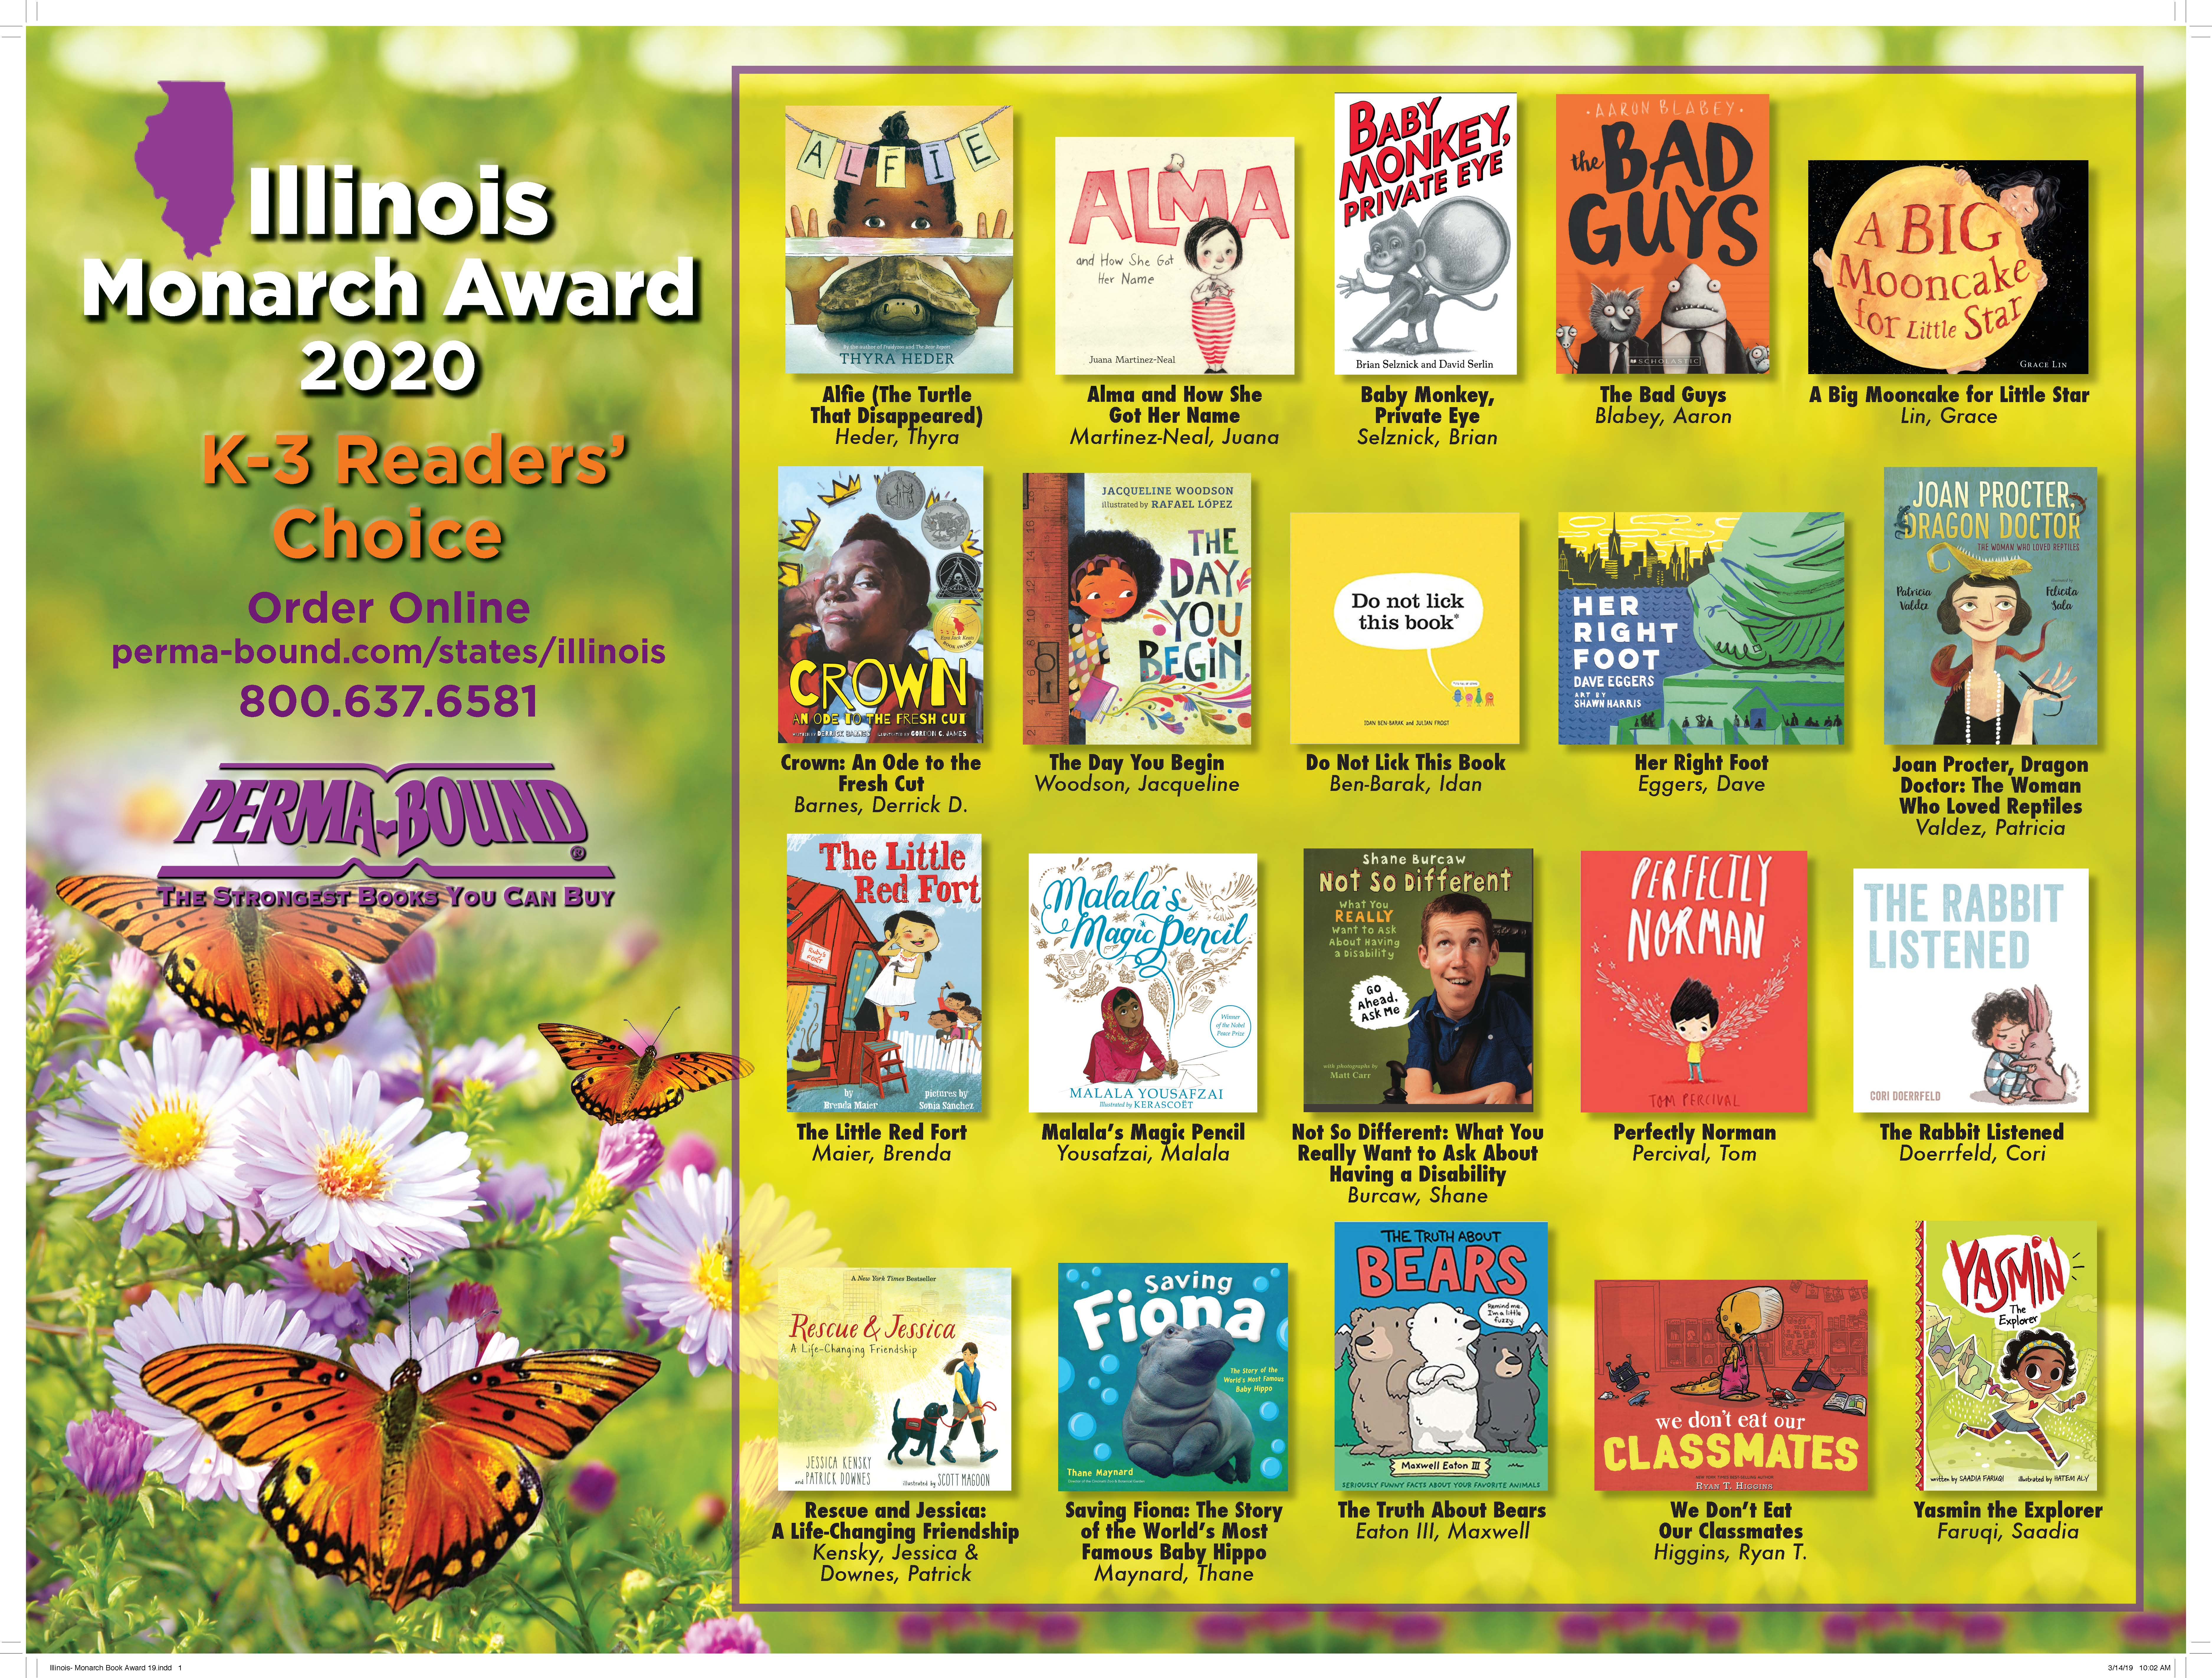 Illinois Monarch Award Poster 2019